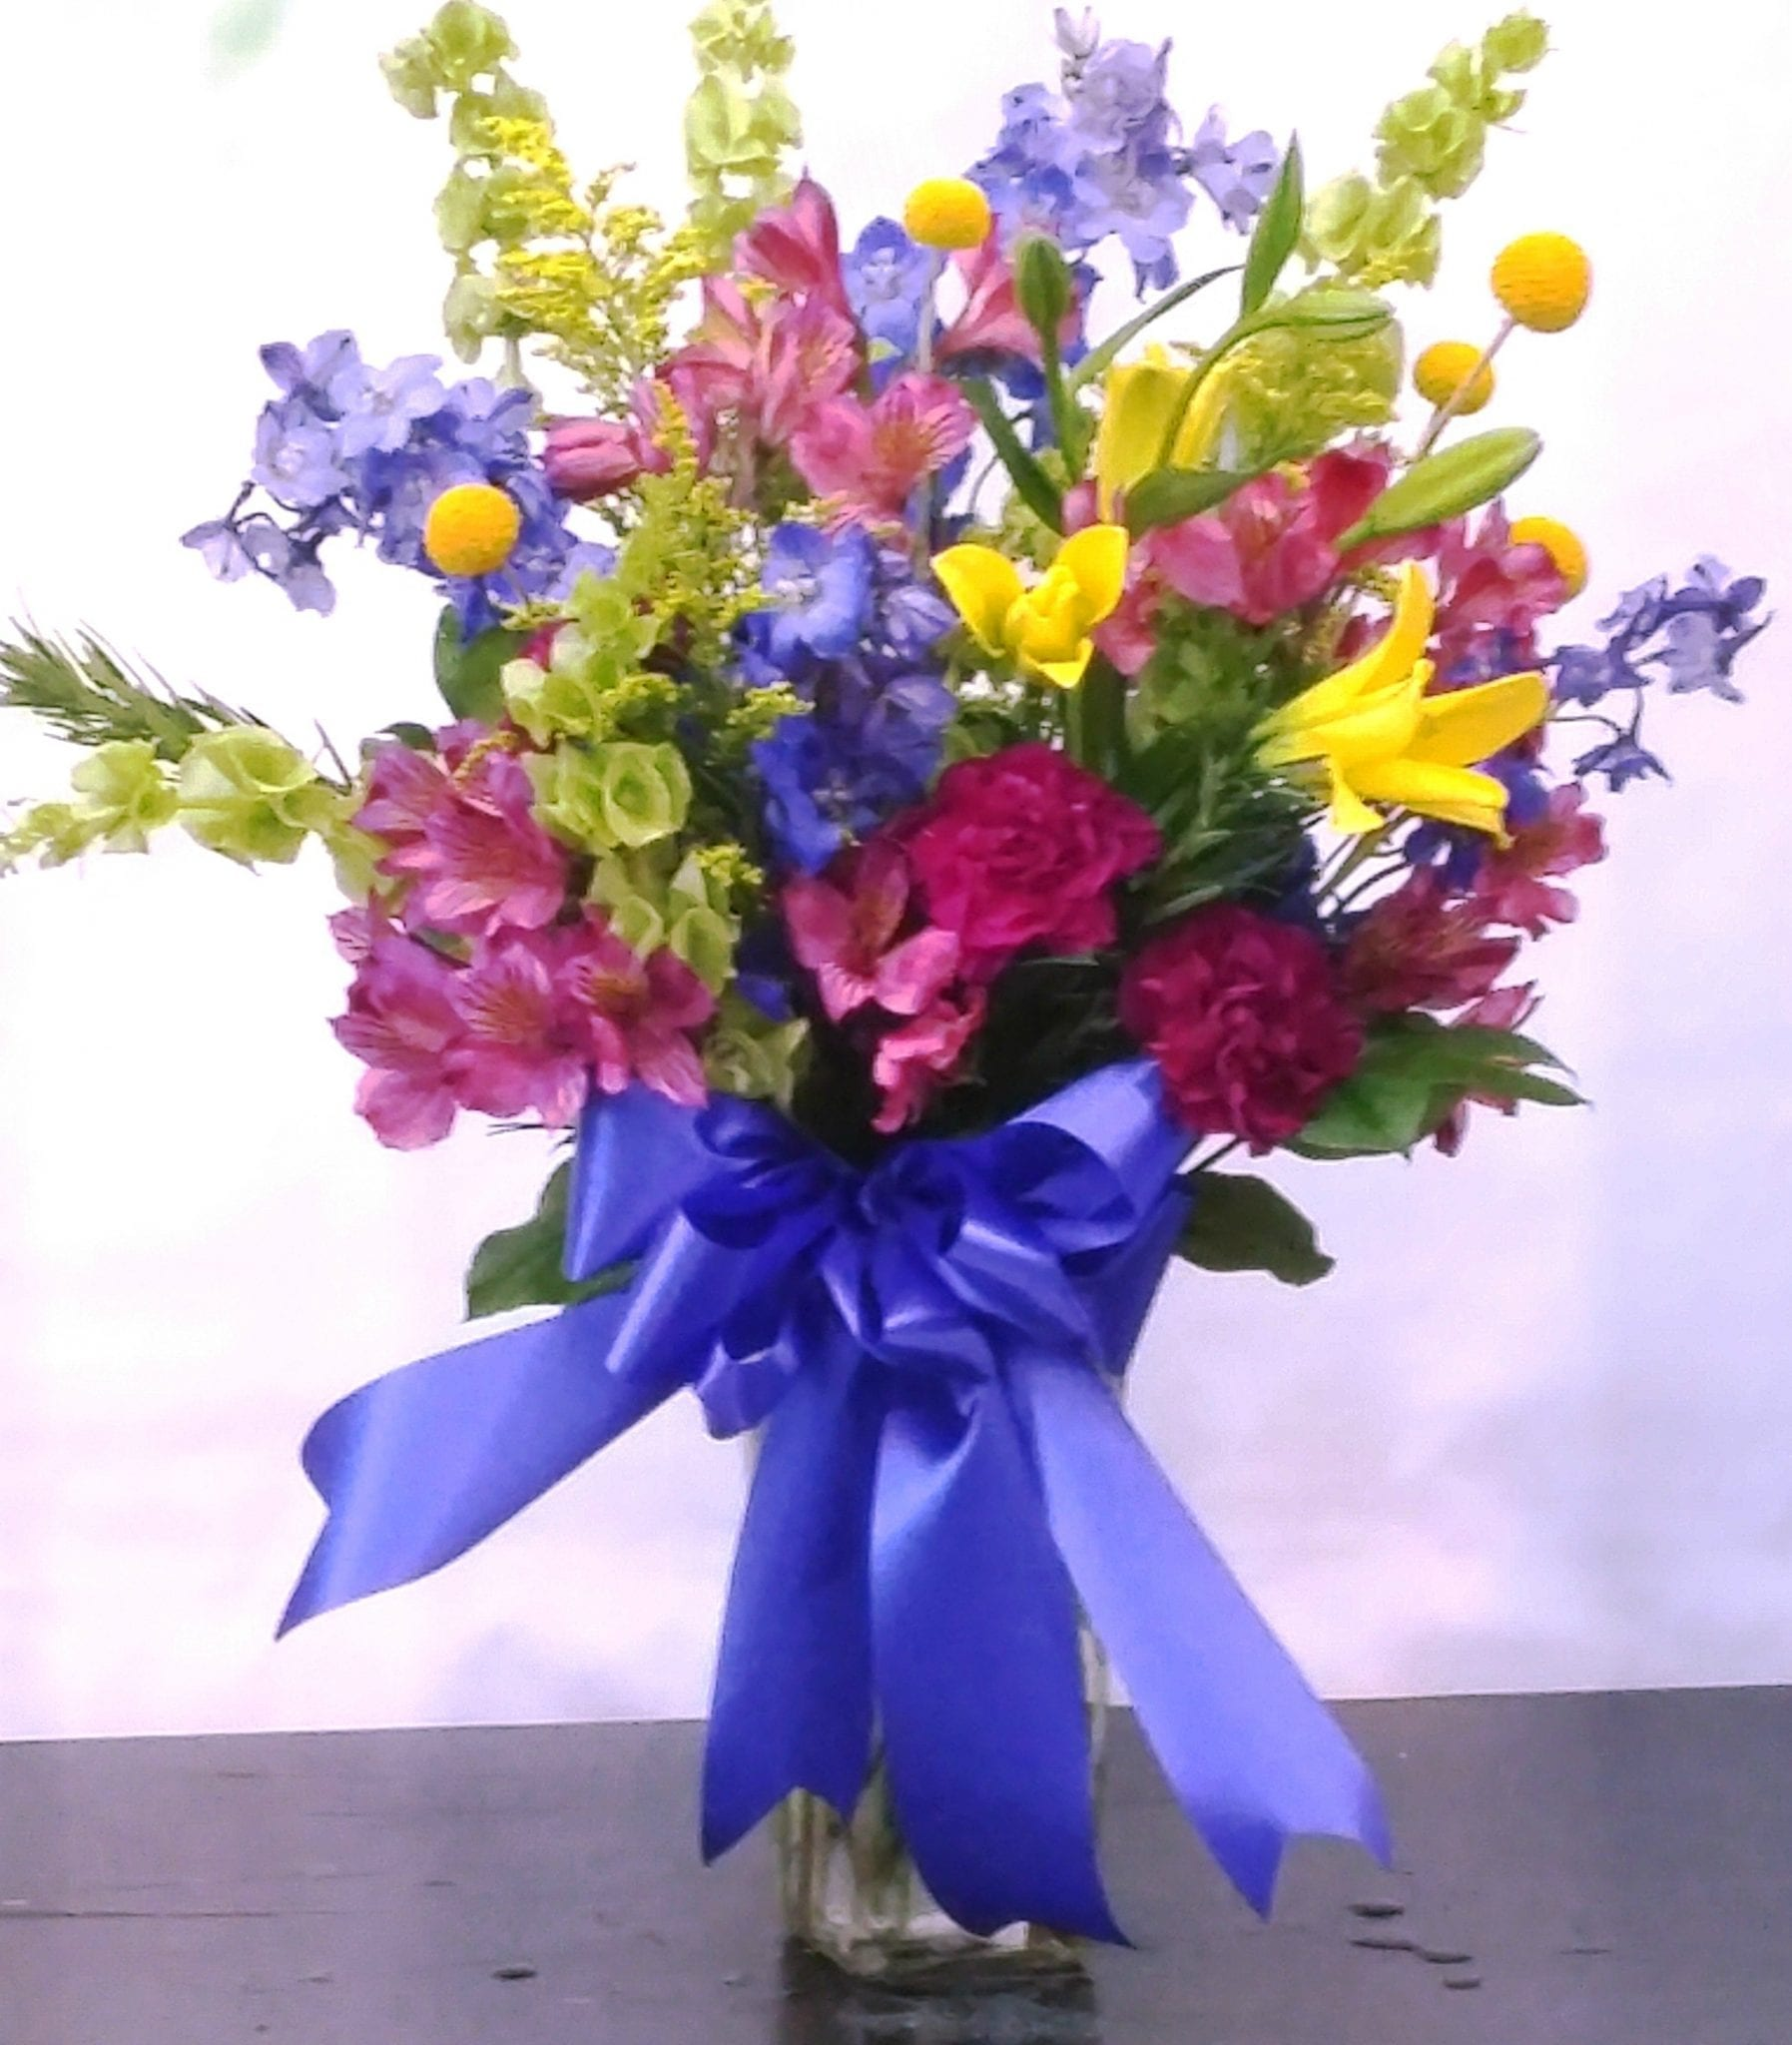 SAME DAY DELIVERY Bright Tribute in a Vase